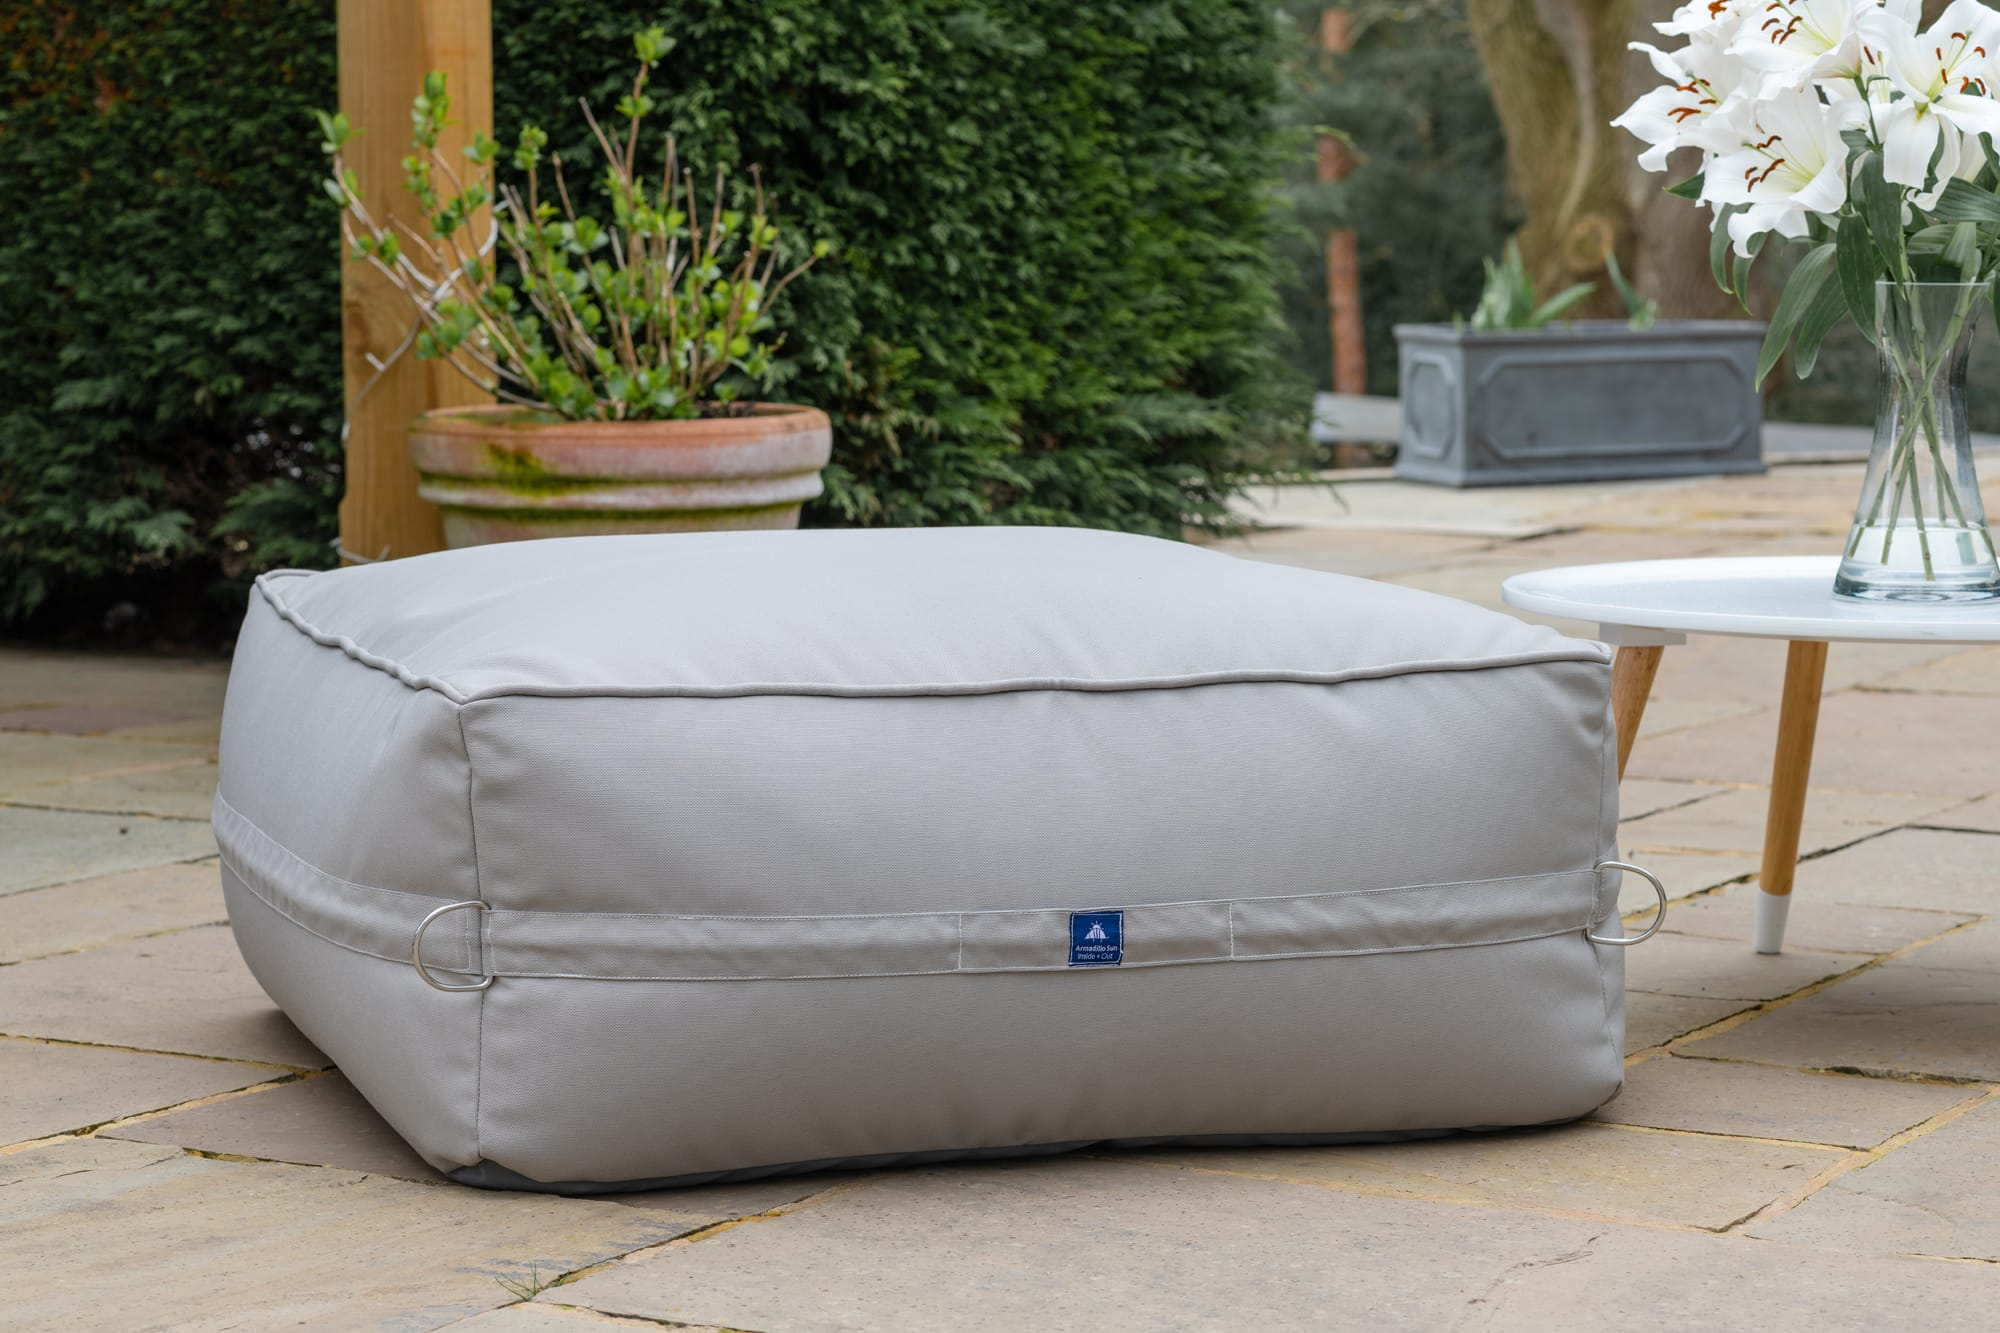 Monaco Modular Bean Bag Ottoman in Pumice Grey with Pumice Straps